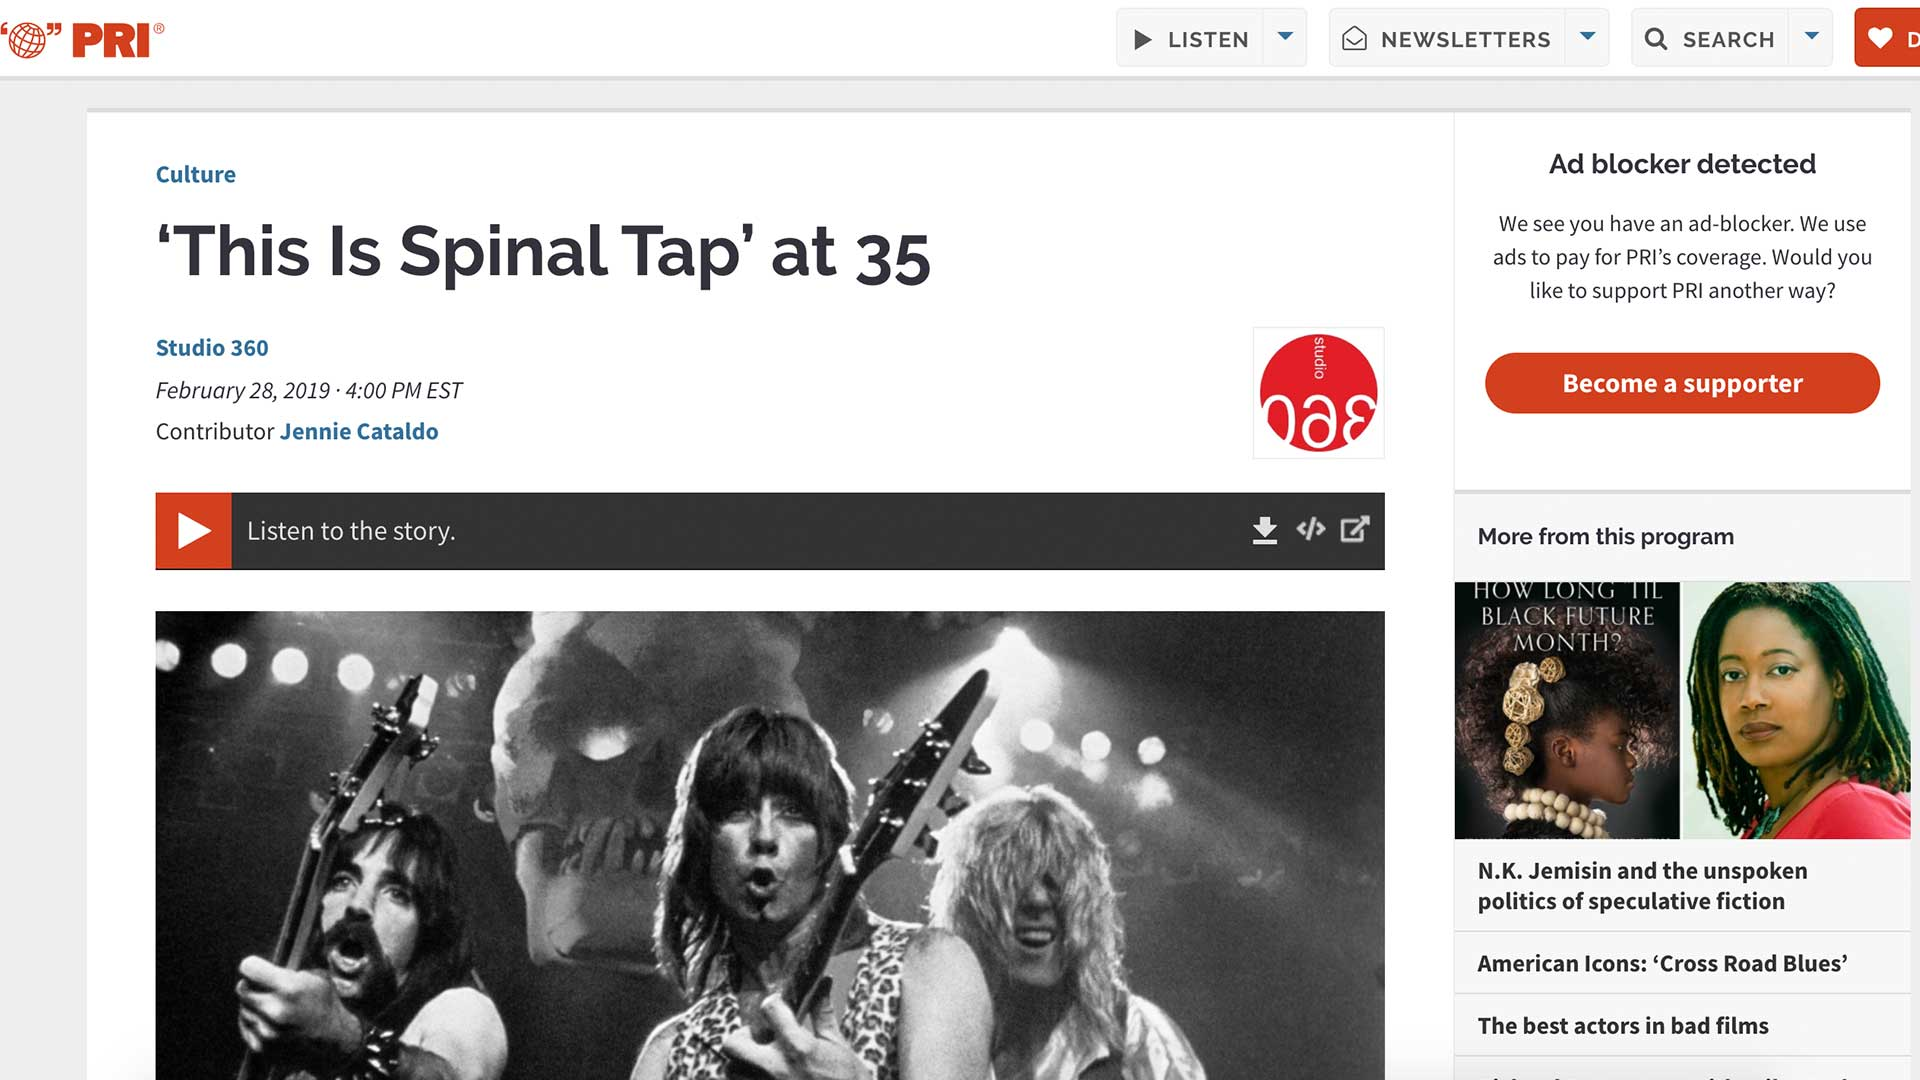 Fairness Rocks News 'This Is Spinal Tap' at 35